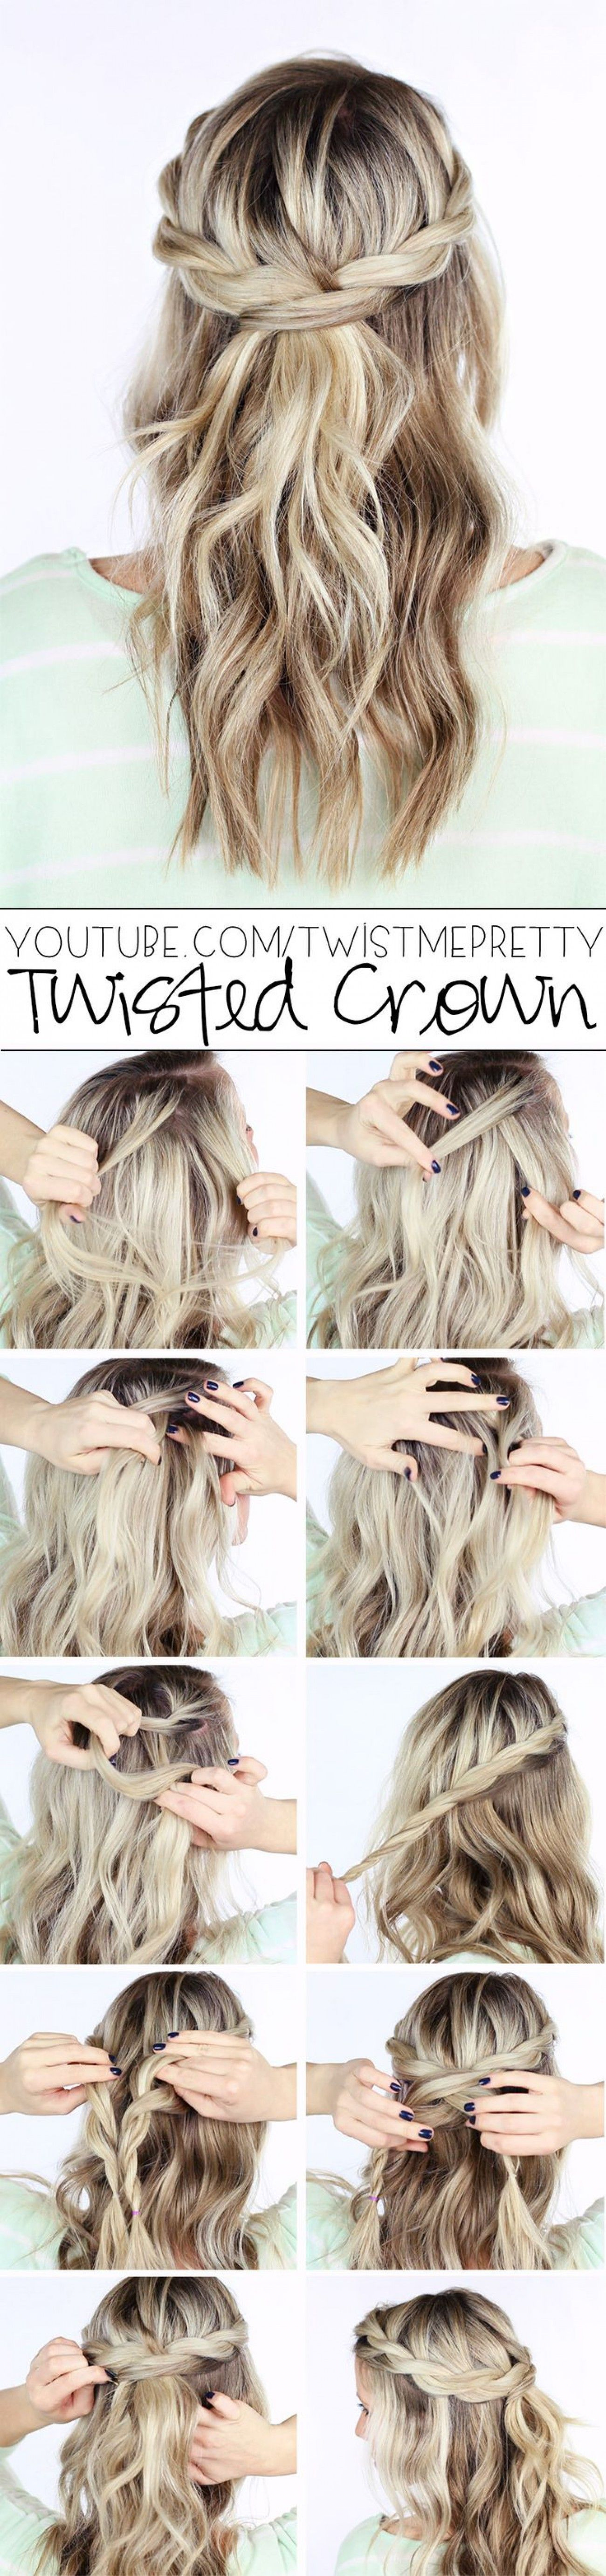 Twisted Hair Hair Haar Kapsel Vlechten Pinterest